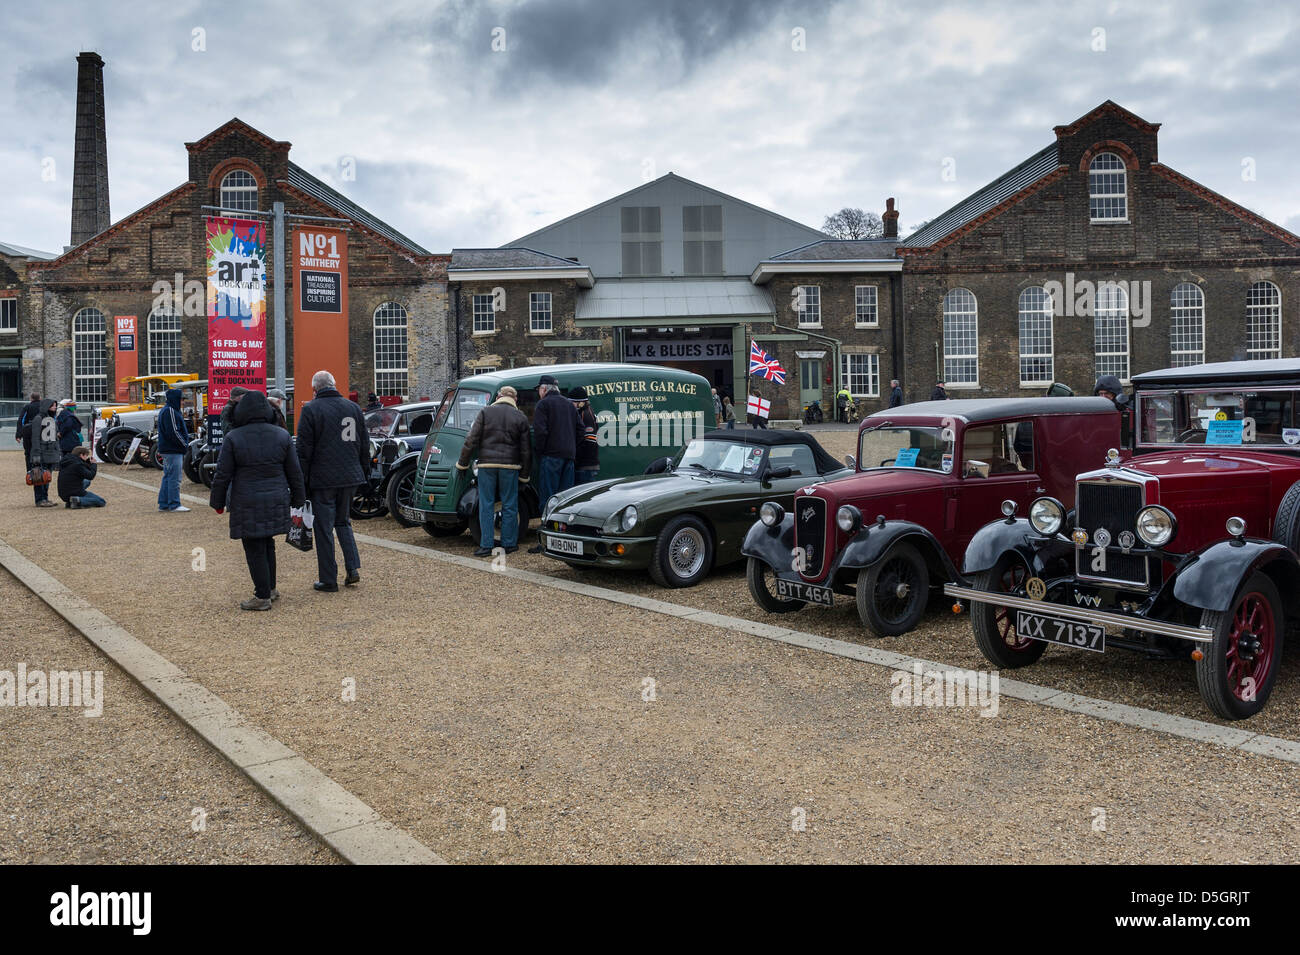 A display of vintage vehicles. - Stock Image